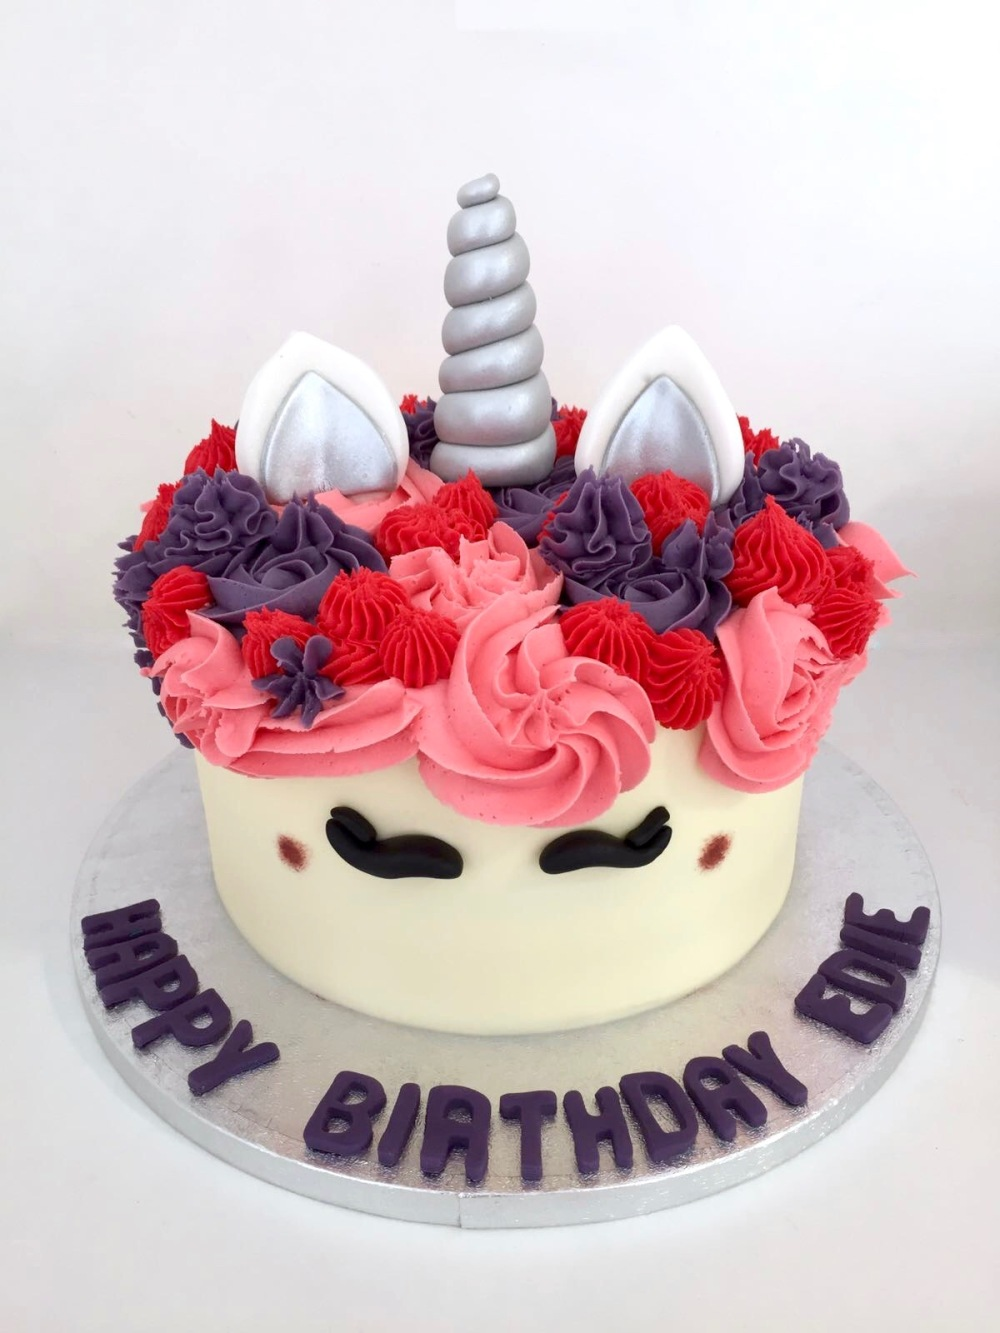 2-monday-national-unicorn-day-cake-1